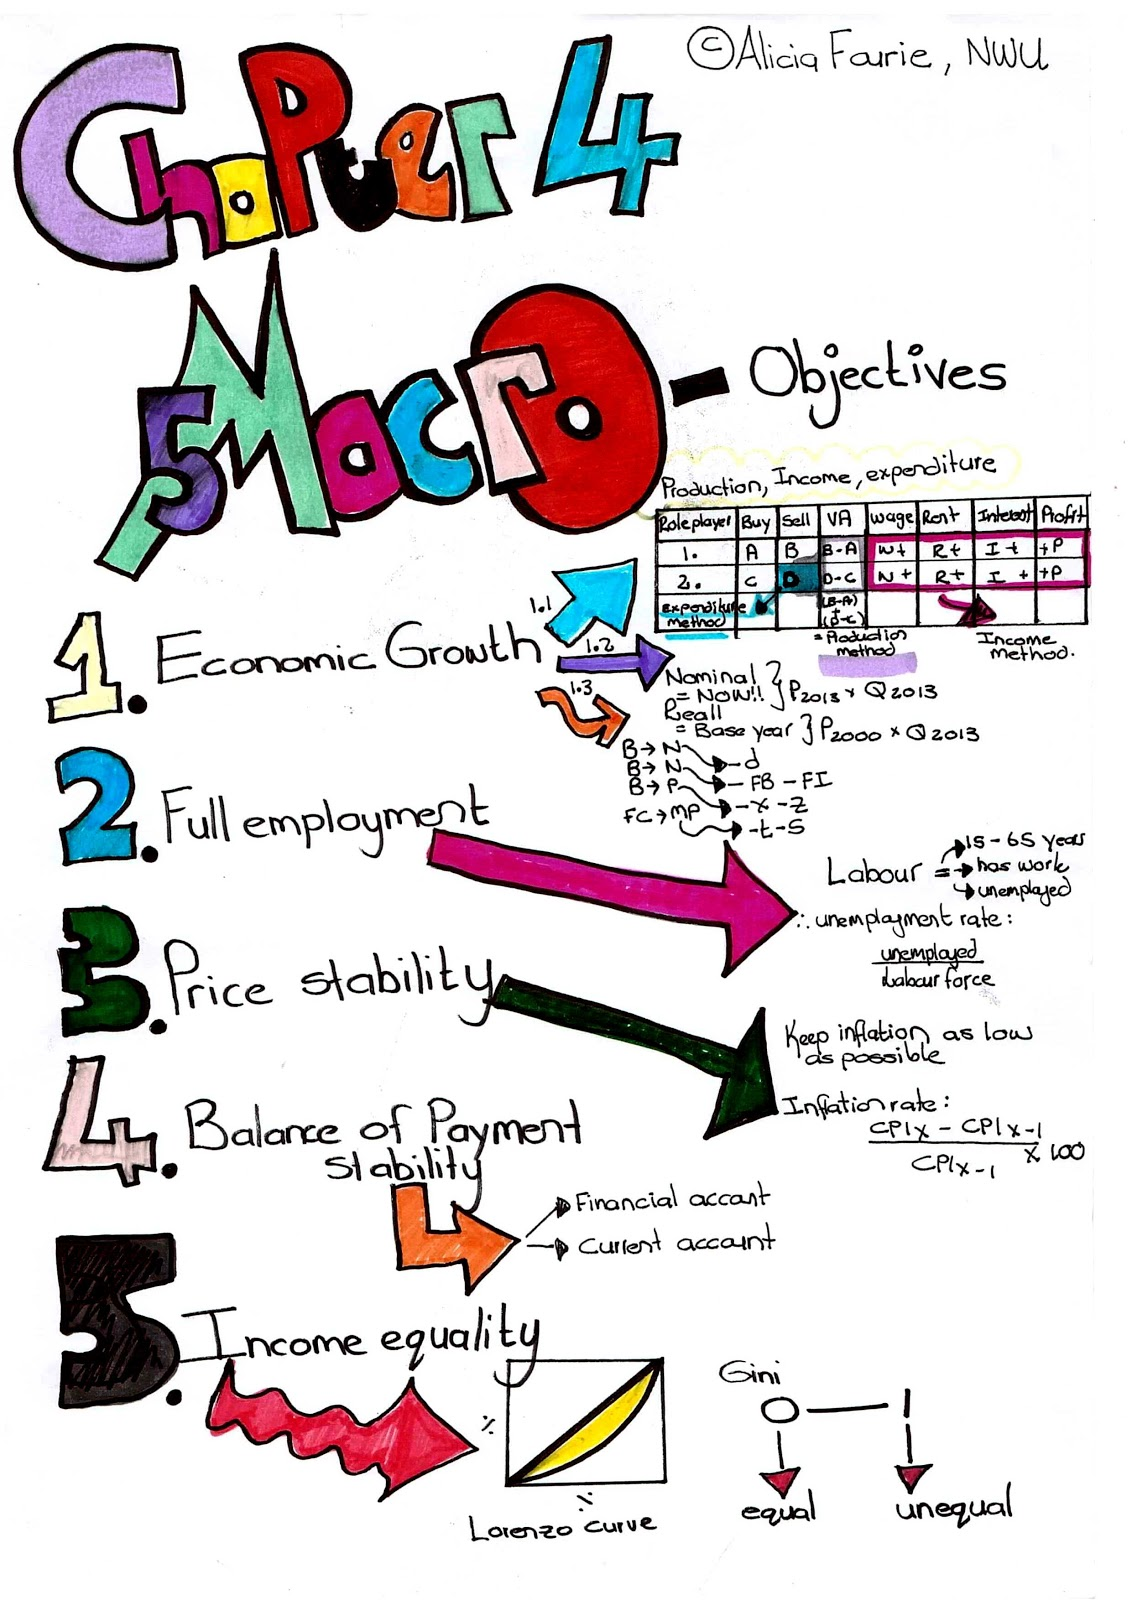 Macroeconomic policy: types, goals and objectives